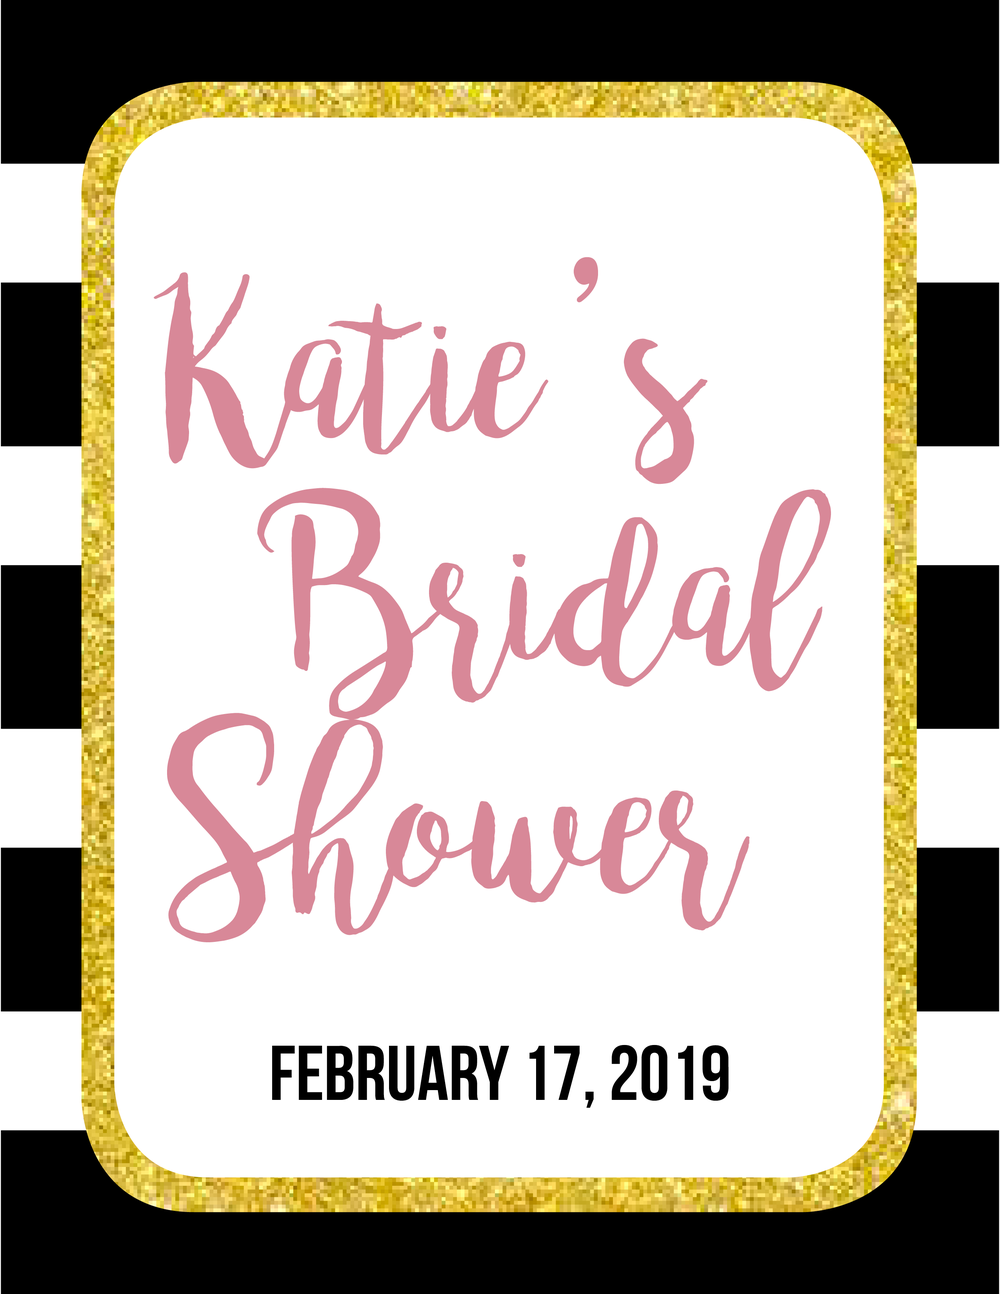 Bridal Shower 8.5x11s3.png